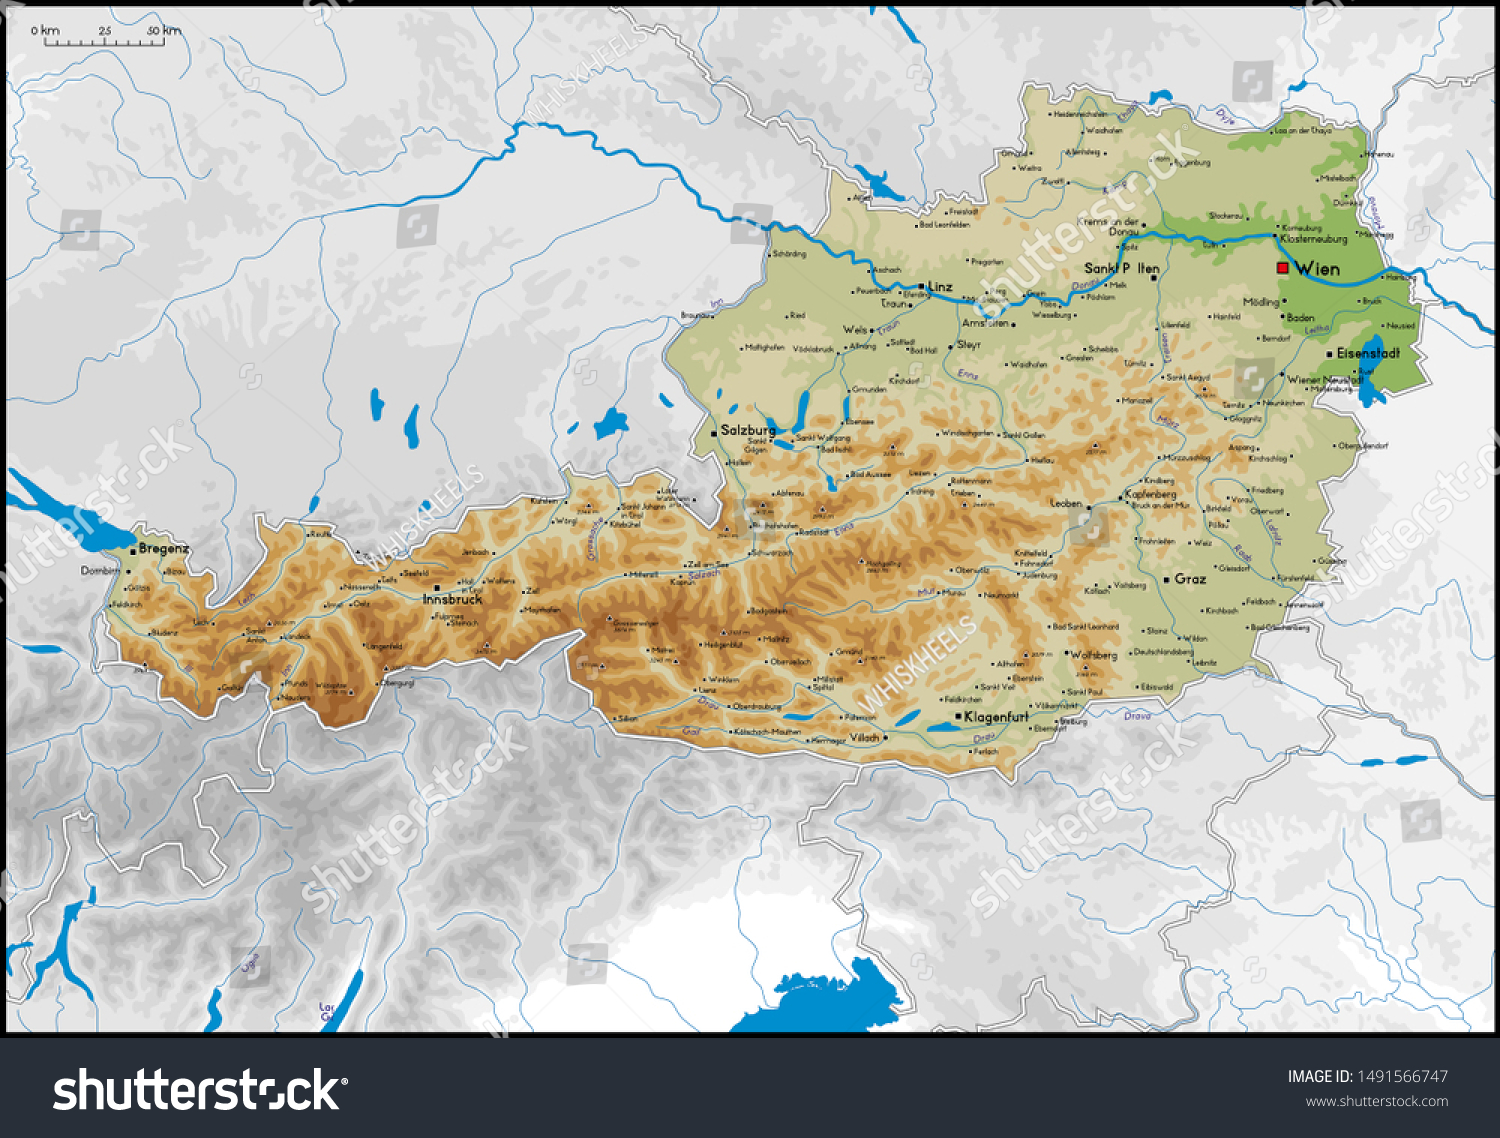 Picture of: High Detailed Austria Physical Map Cities Stock Vector Royalty Free 1491566747